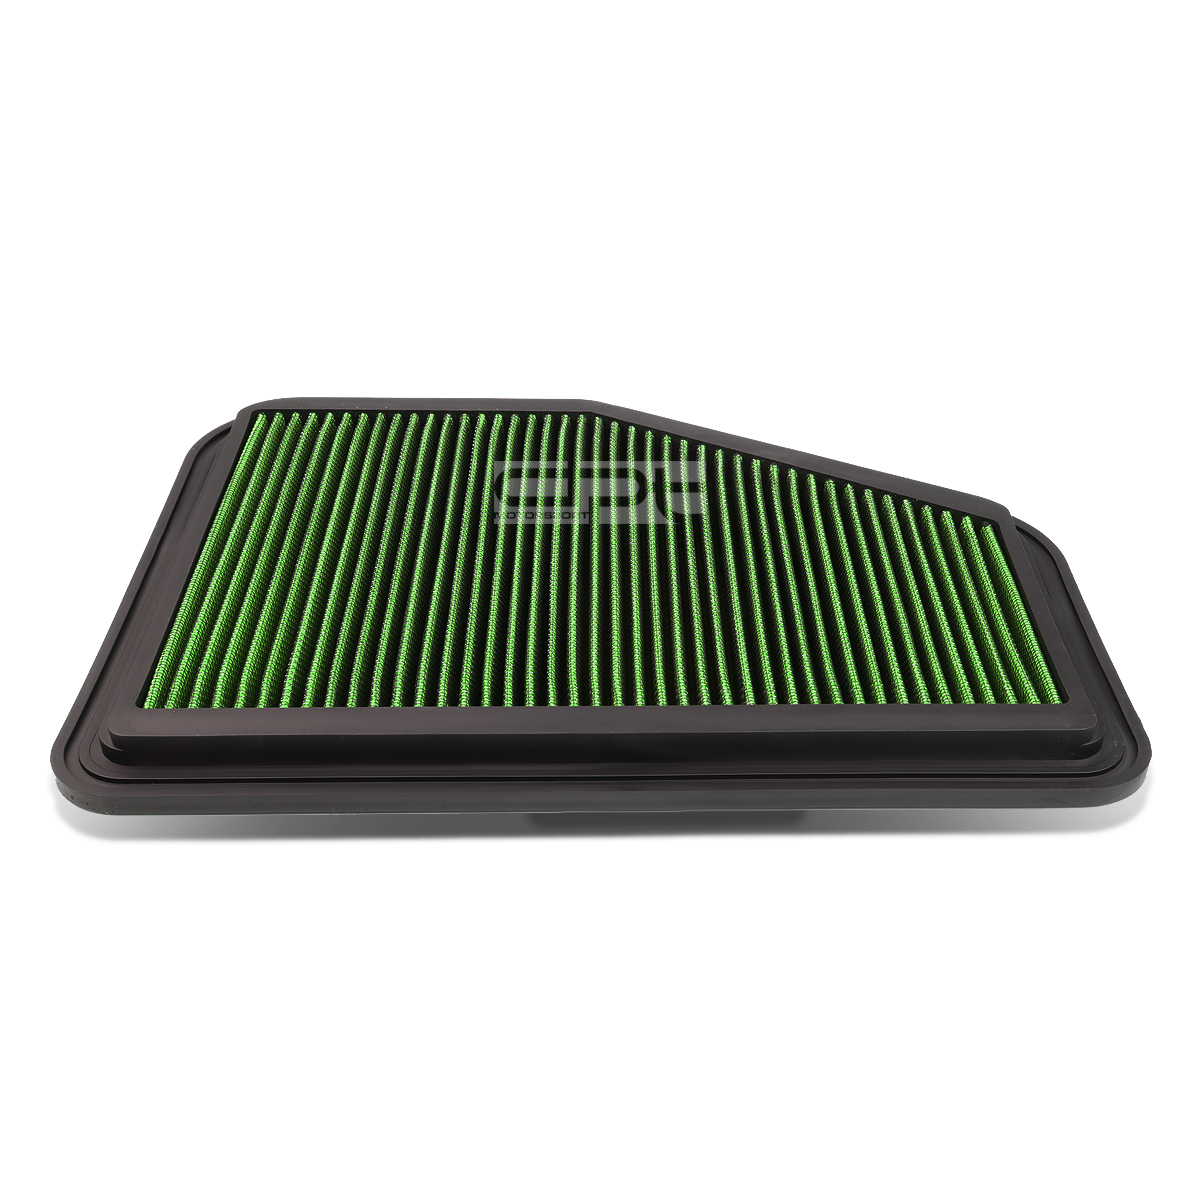 GREEN WASHABLE HIGH FLOW AIR FILTER FOR 11-17 CHEVY SS CAPRICE 08-09 PONTIAC G8